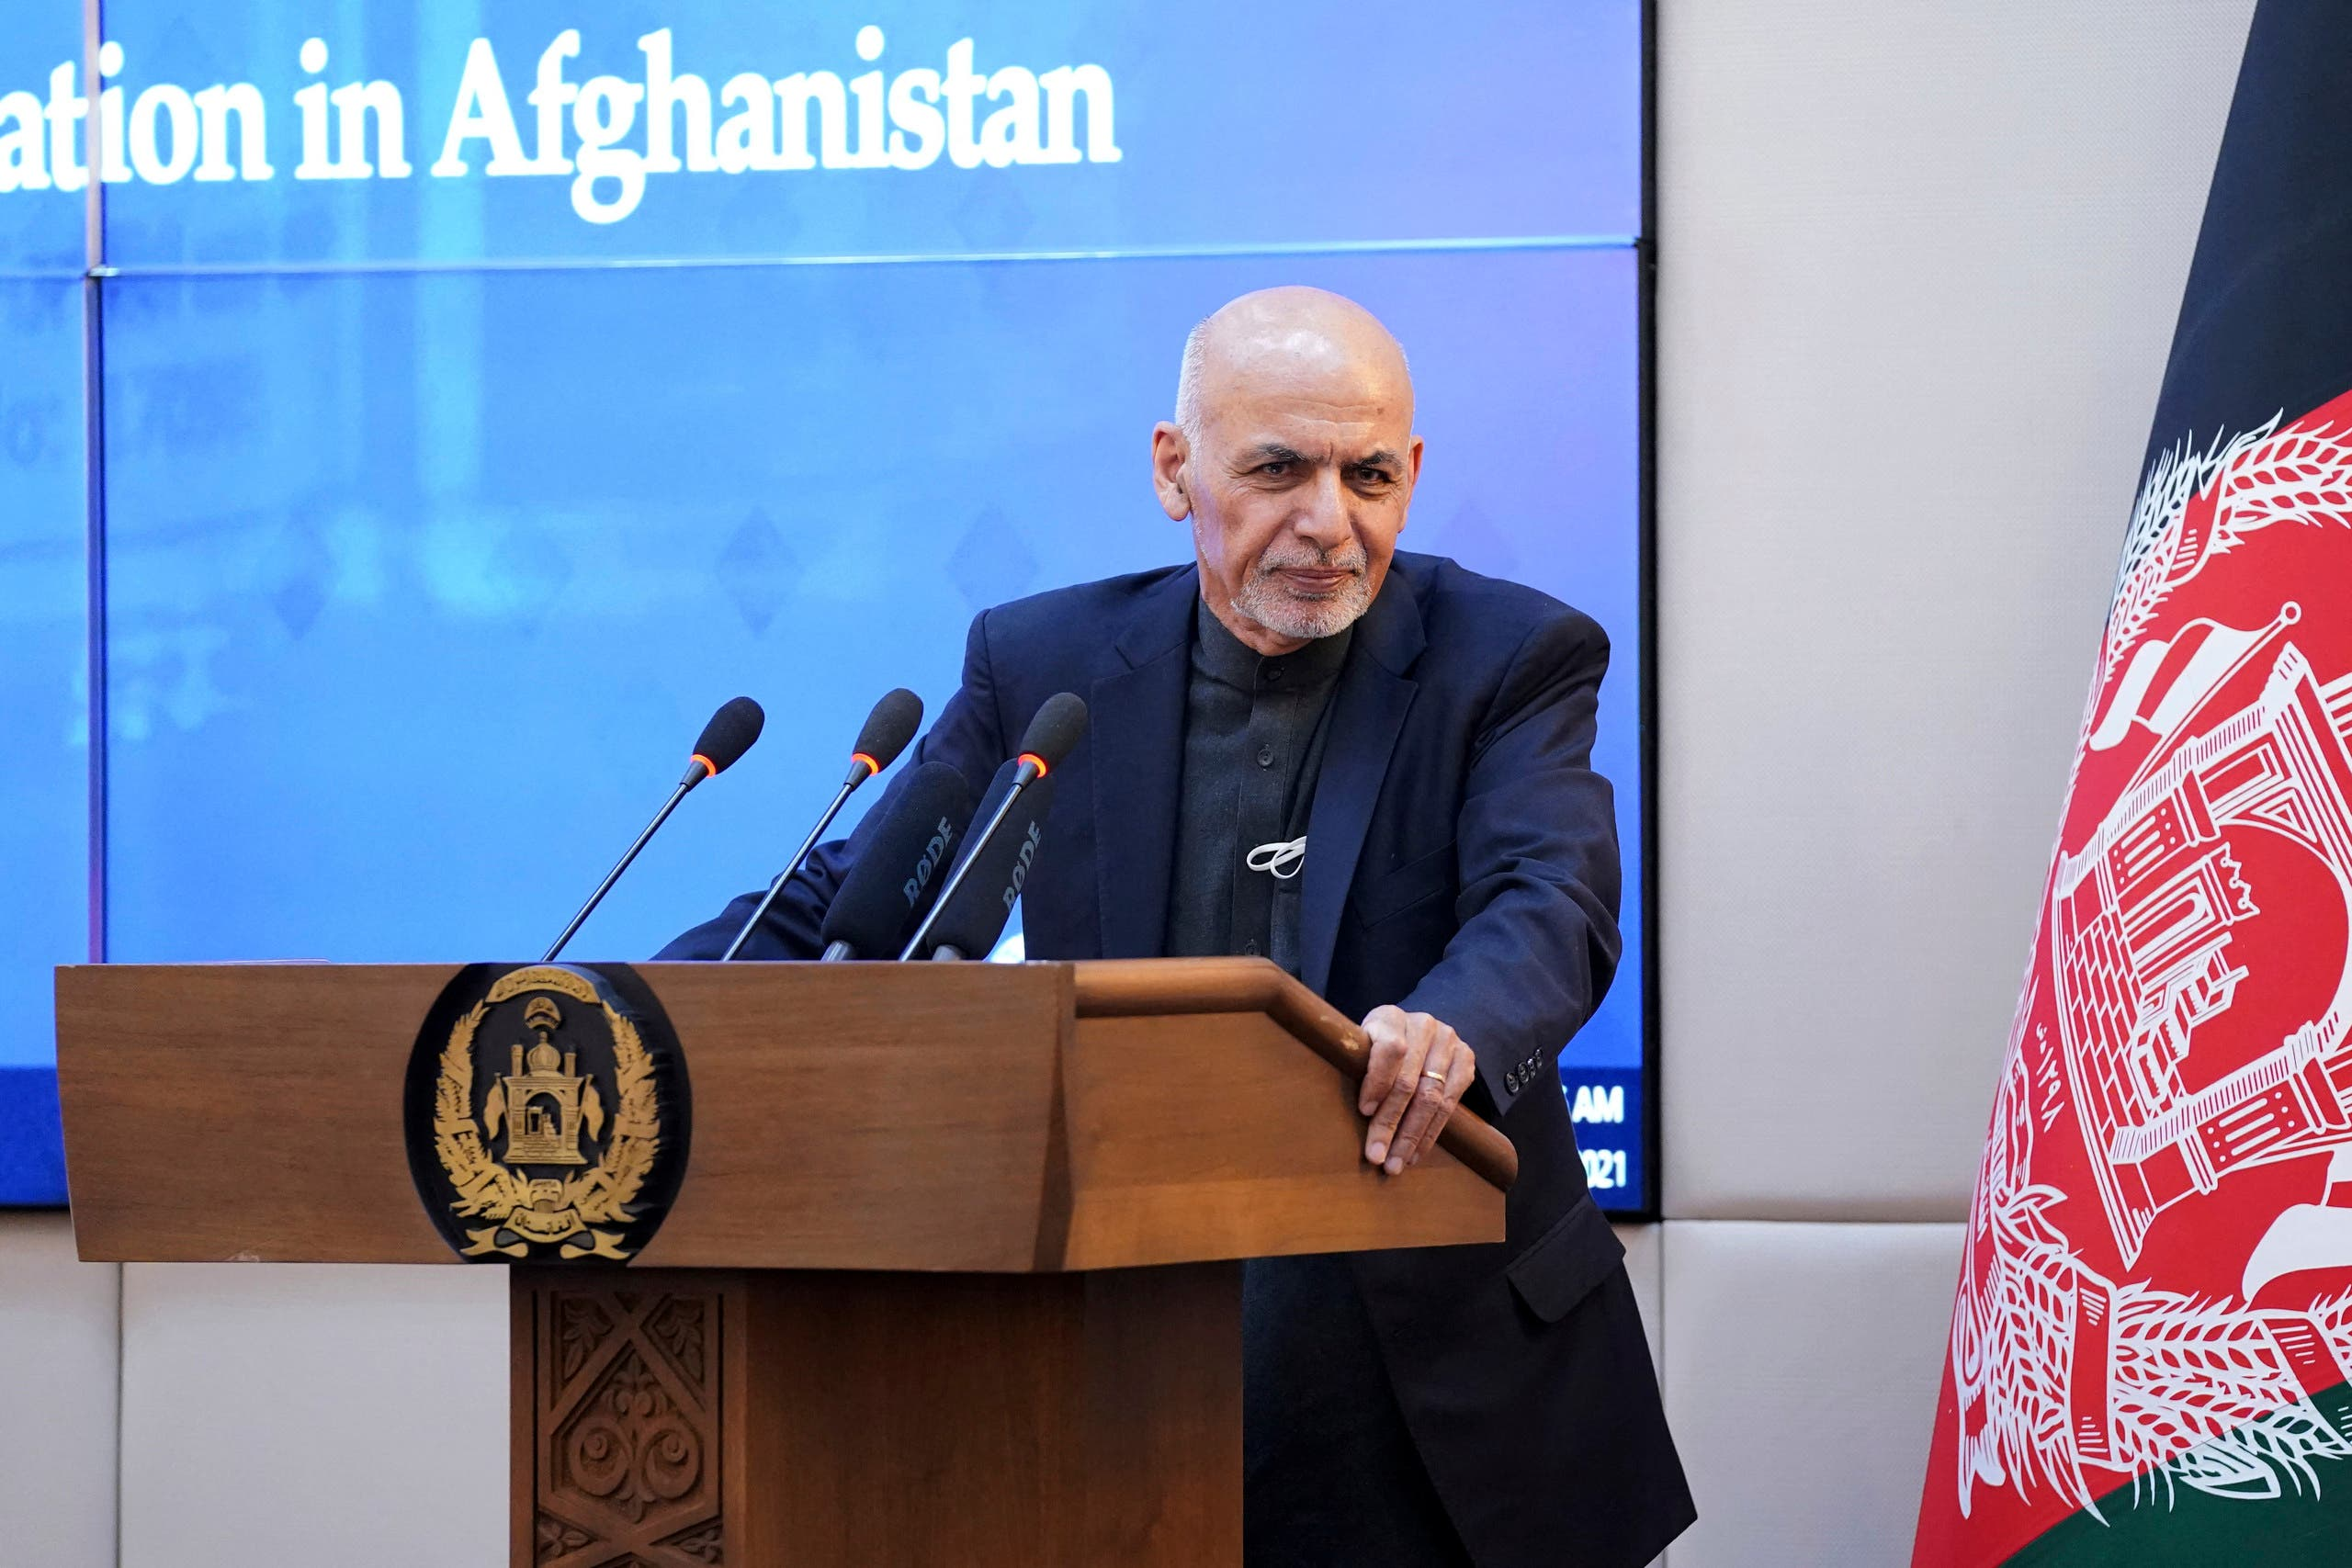 Afghan President Ashraf Ghani speaking during a ceremony at the Presidential Palace in Kabul, as Afghanistan launched a Covid-19 vaccination campaign. (File photo)